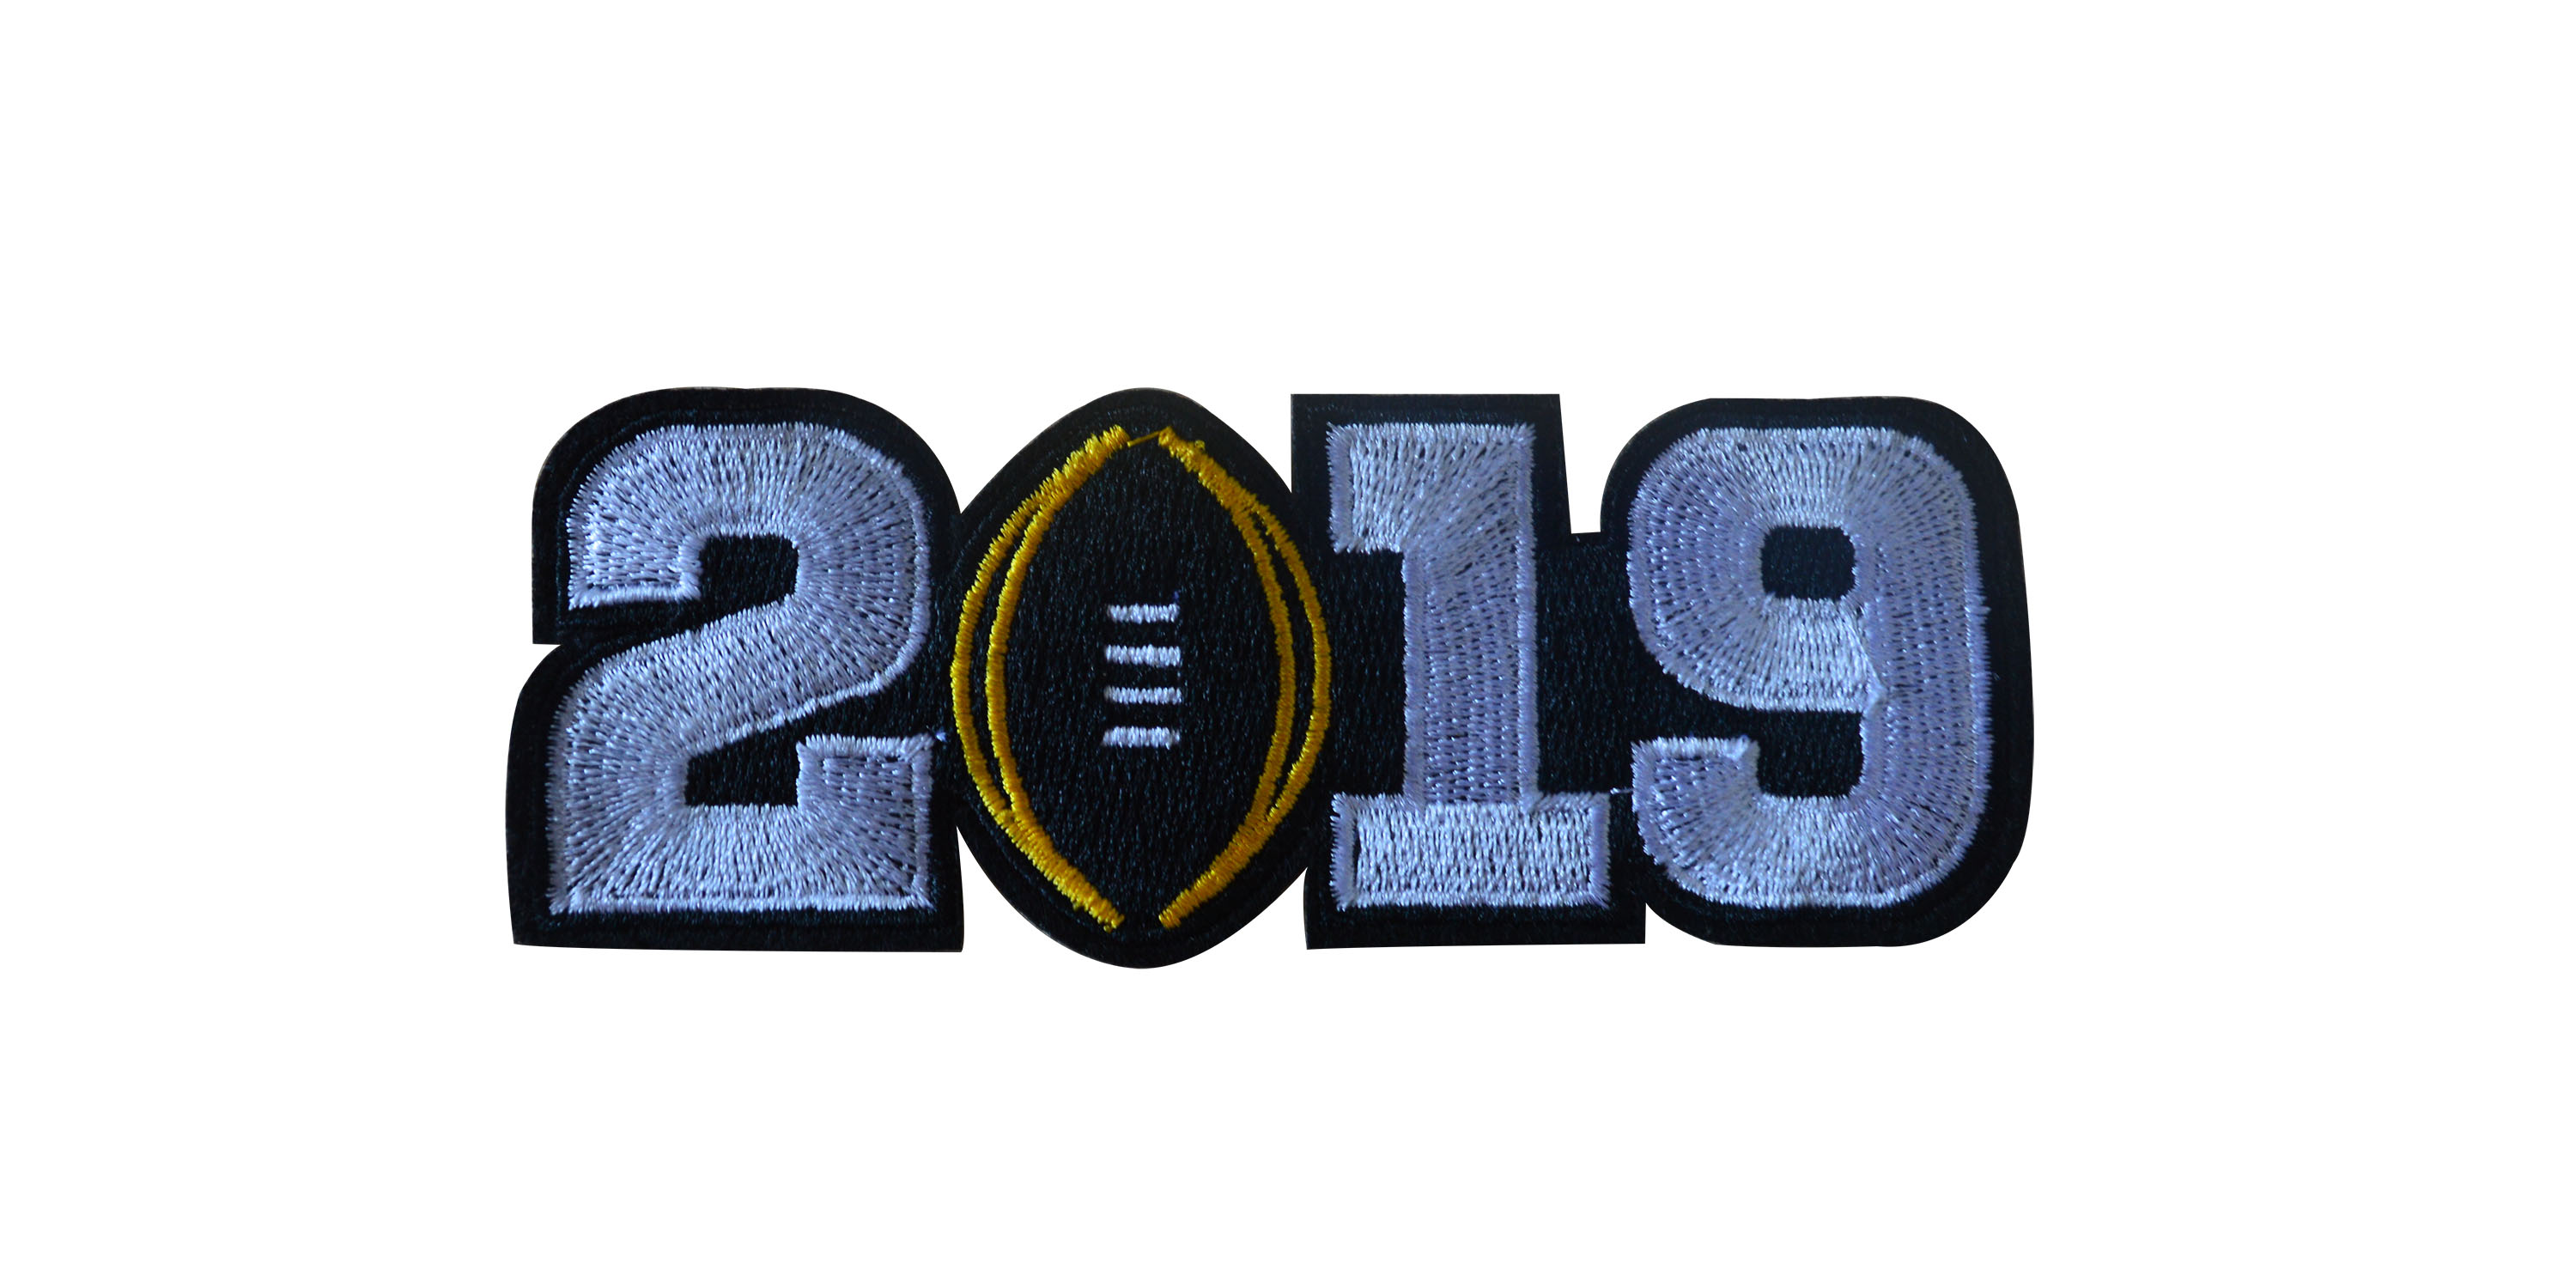 College Football White 2019 Finals Patch